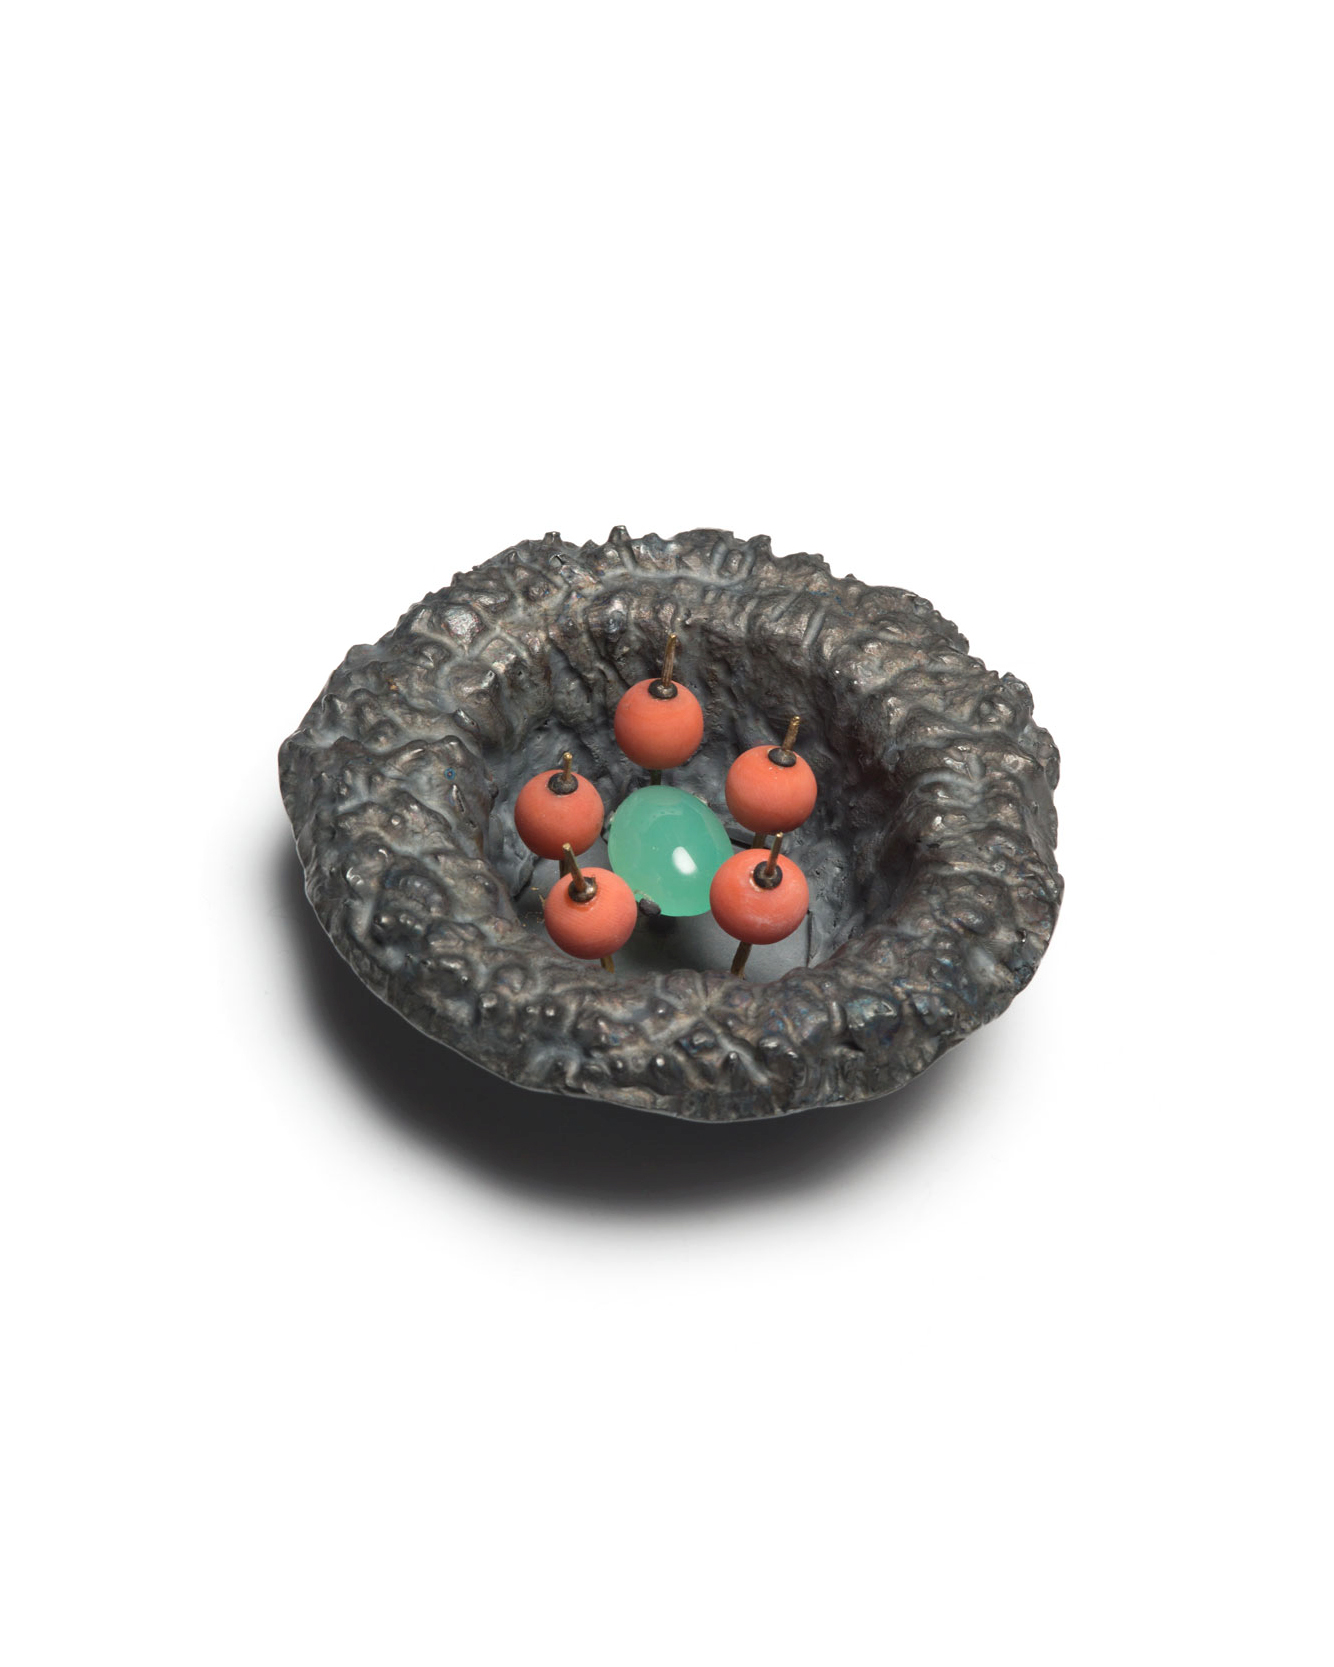 Winfried Krüger, untitled, 1992, brooch; oxidised silver, coral, chrysoprase, ø 80 mm, €1940